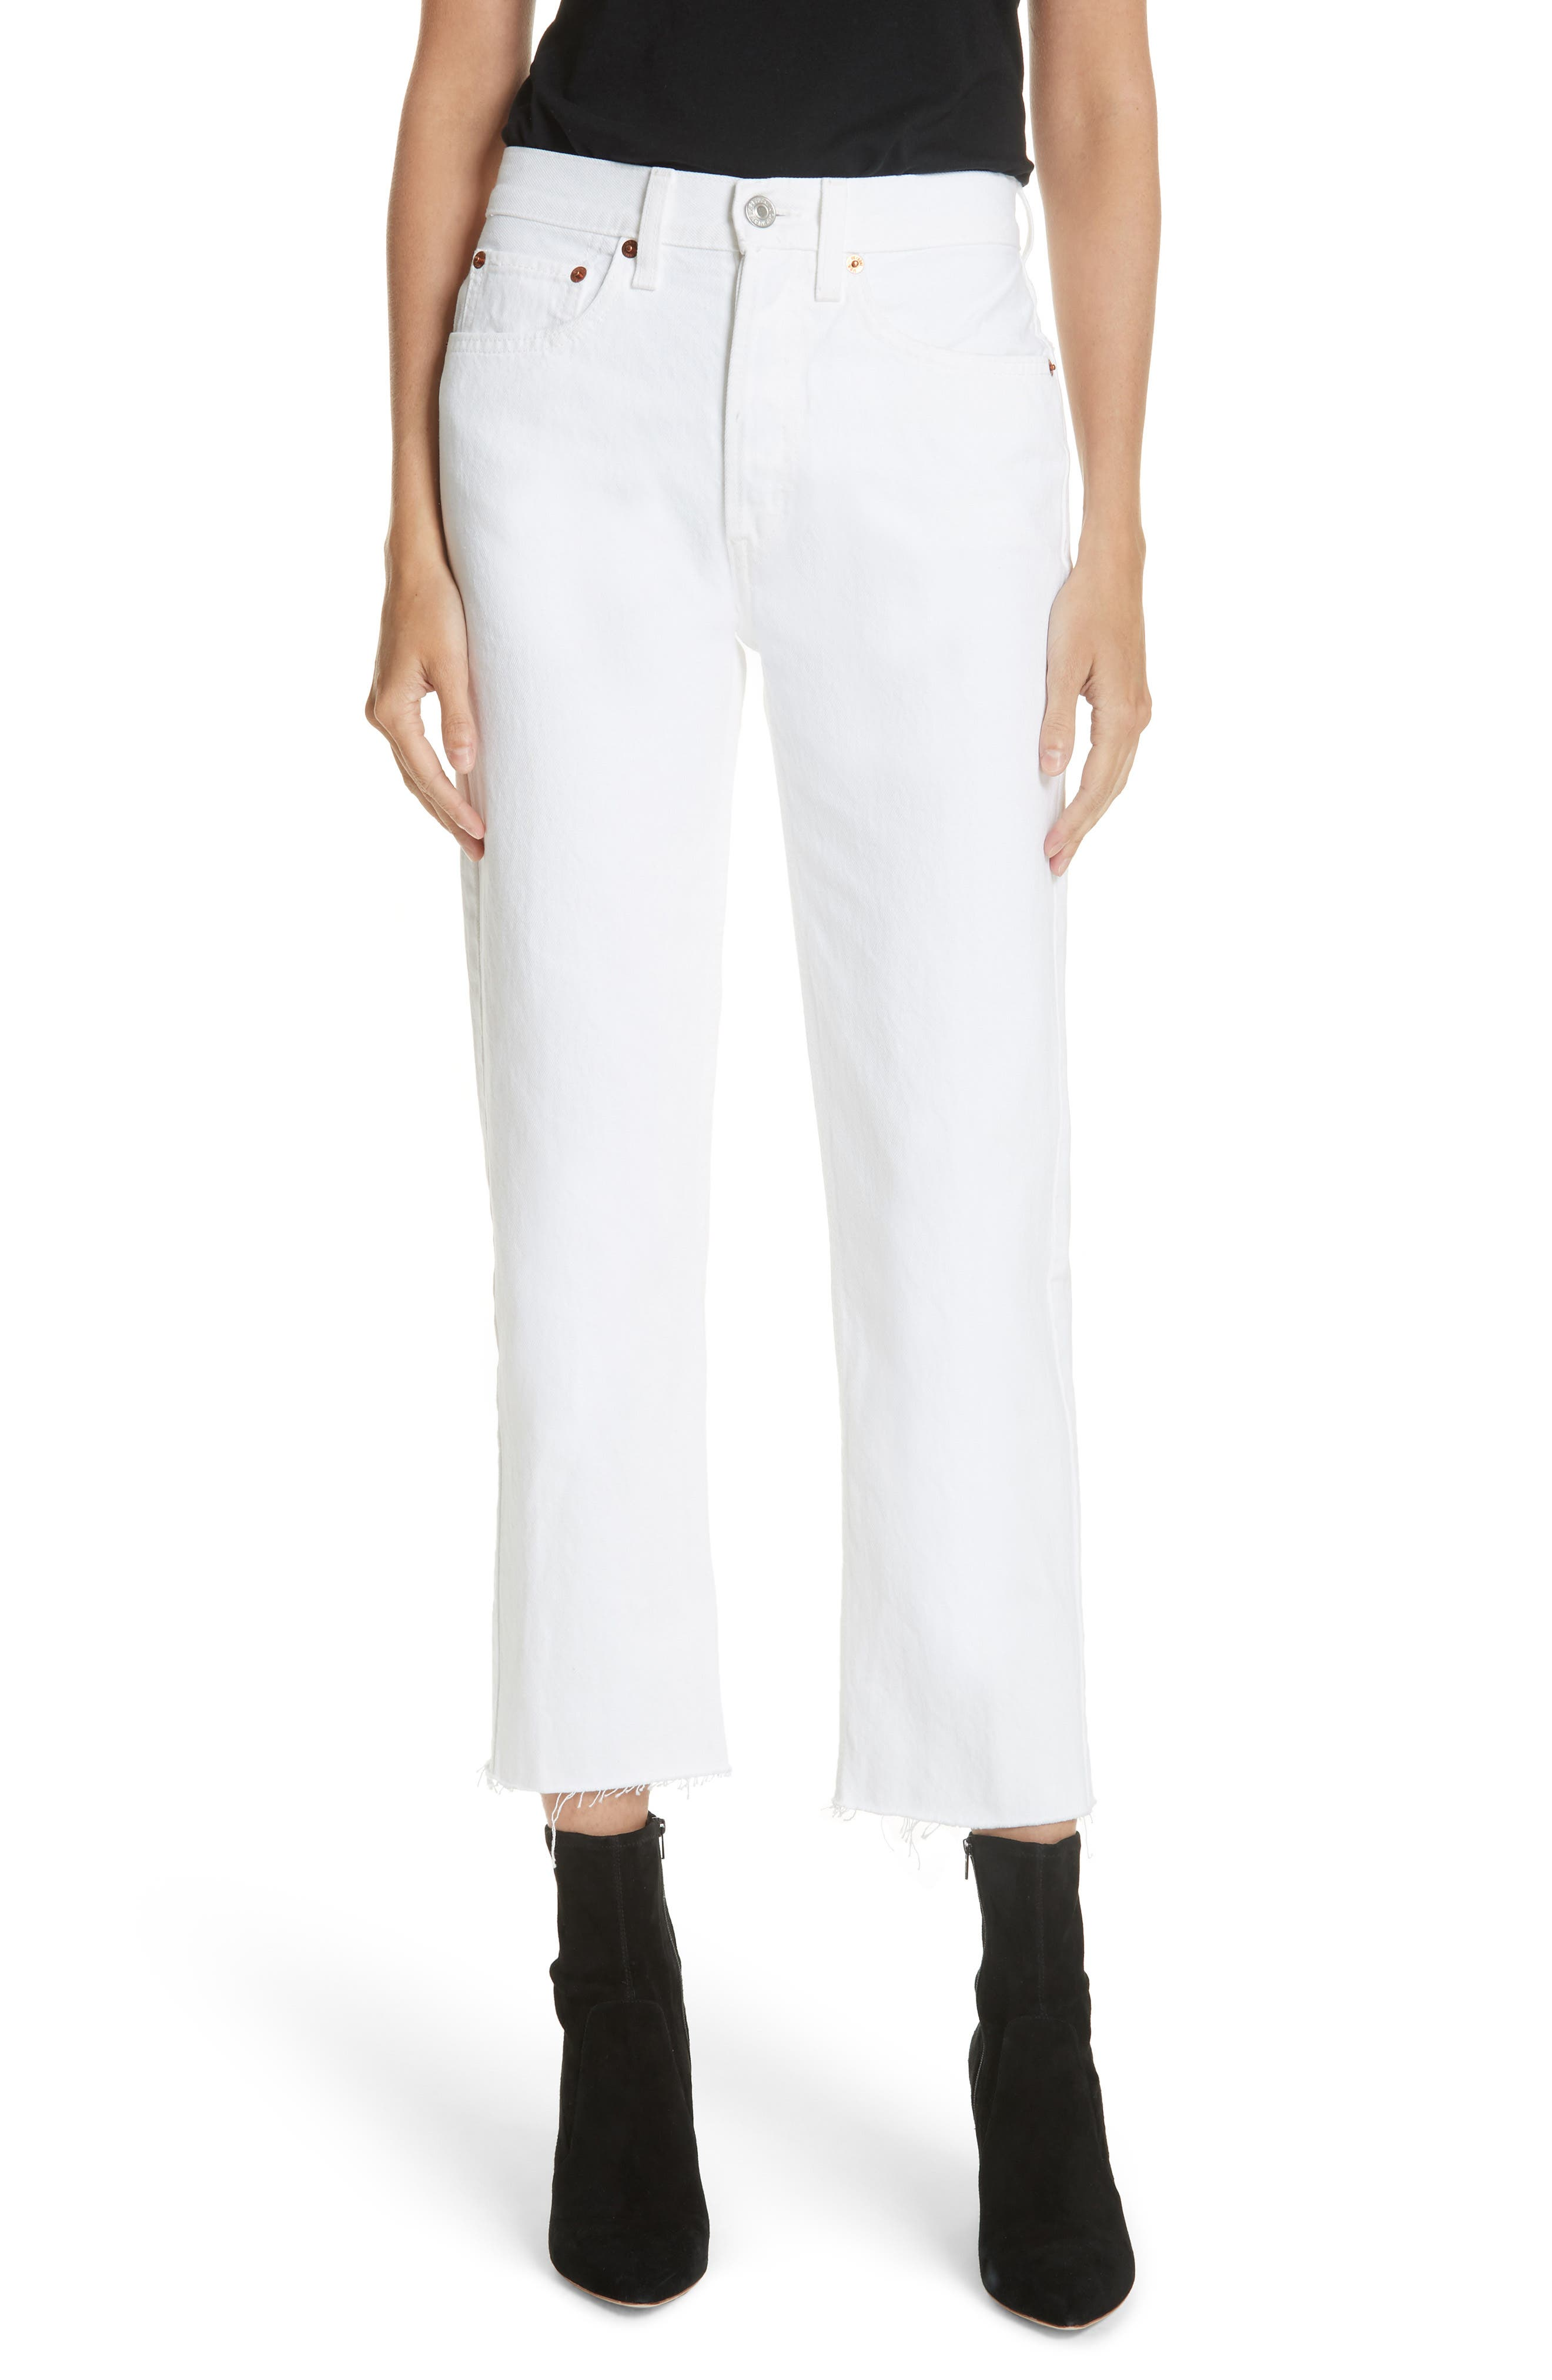 Originals High Waist Stove Pipe Jeans,                         Main,                         color, White